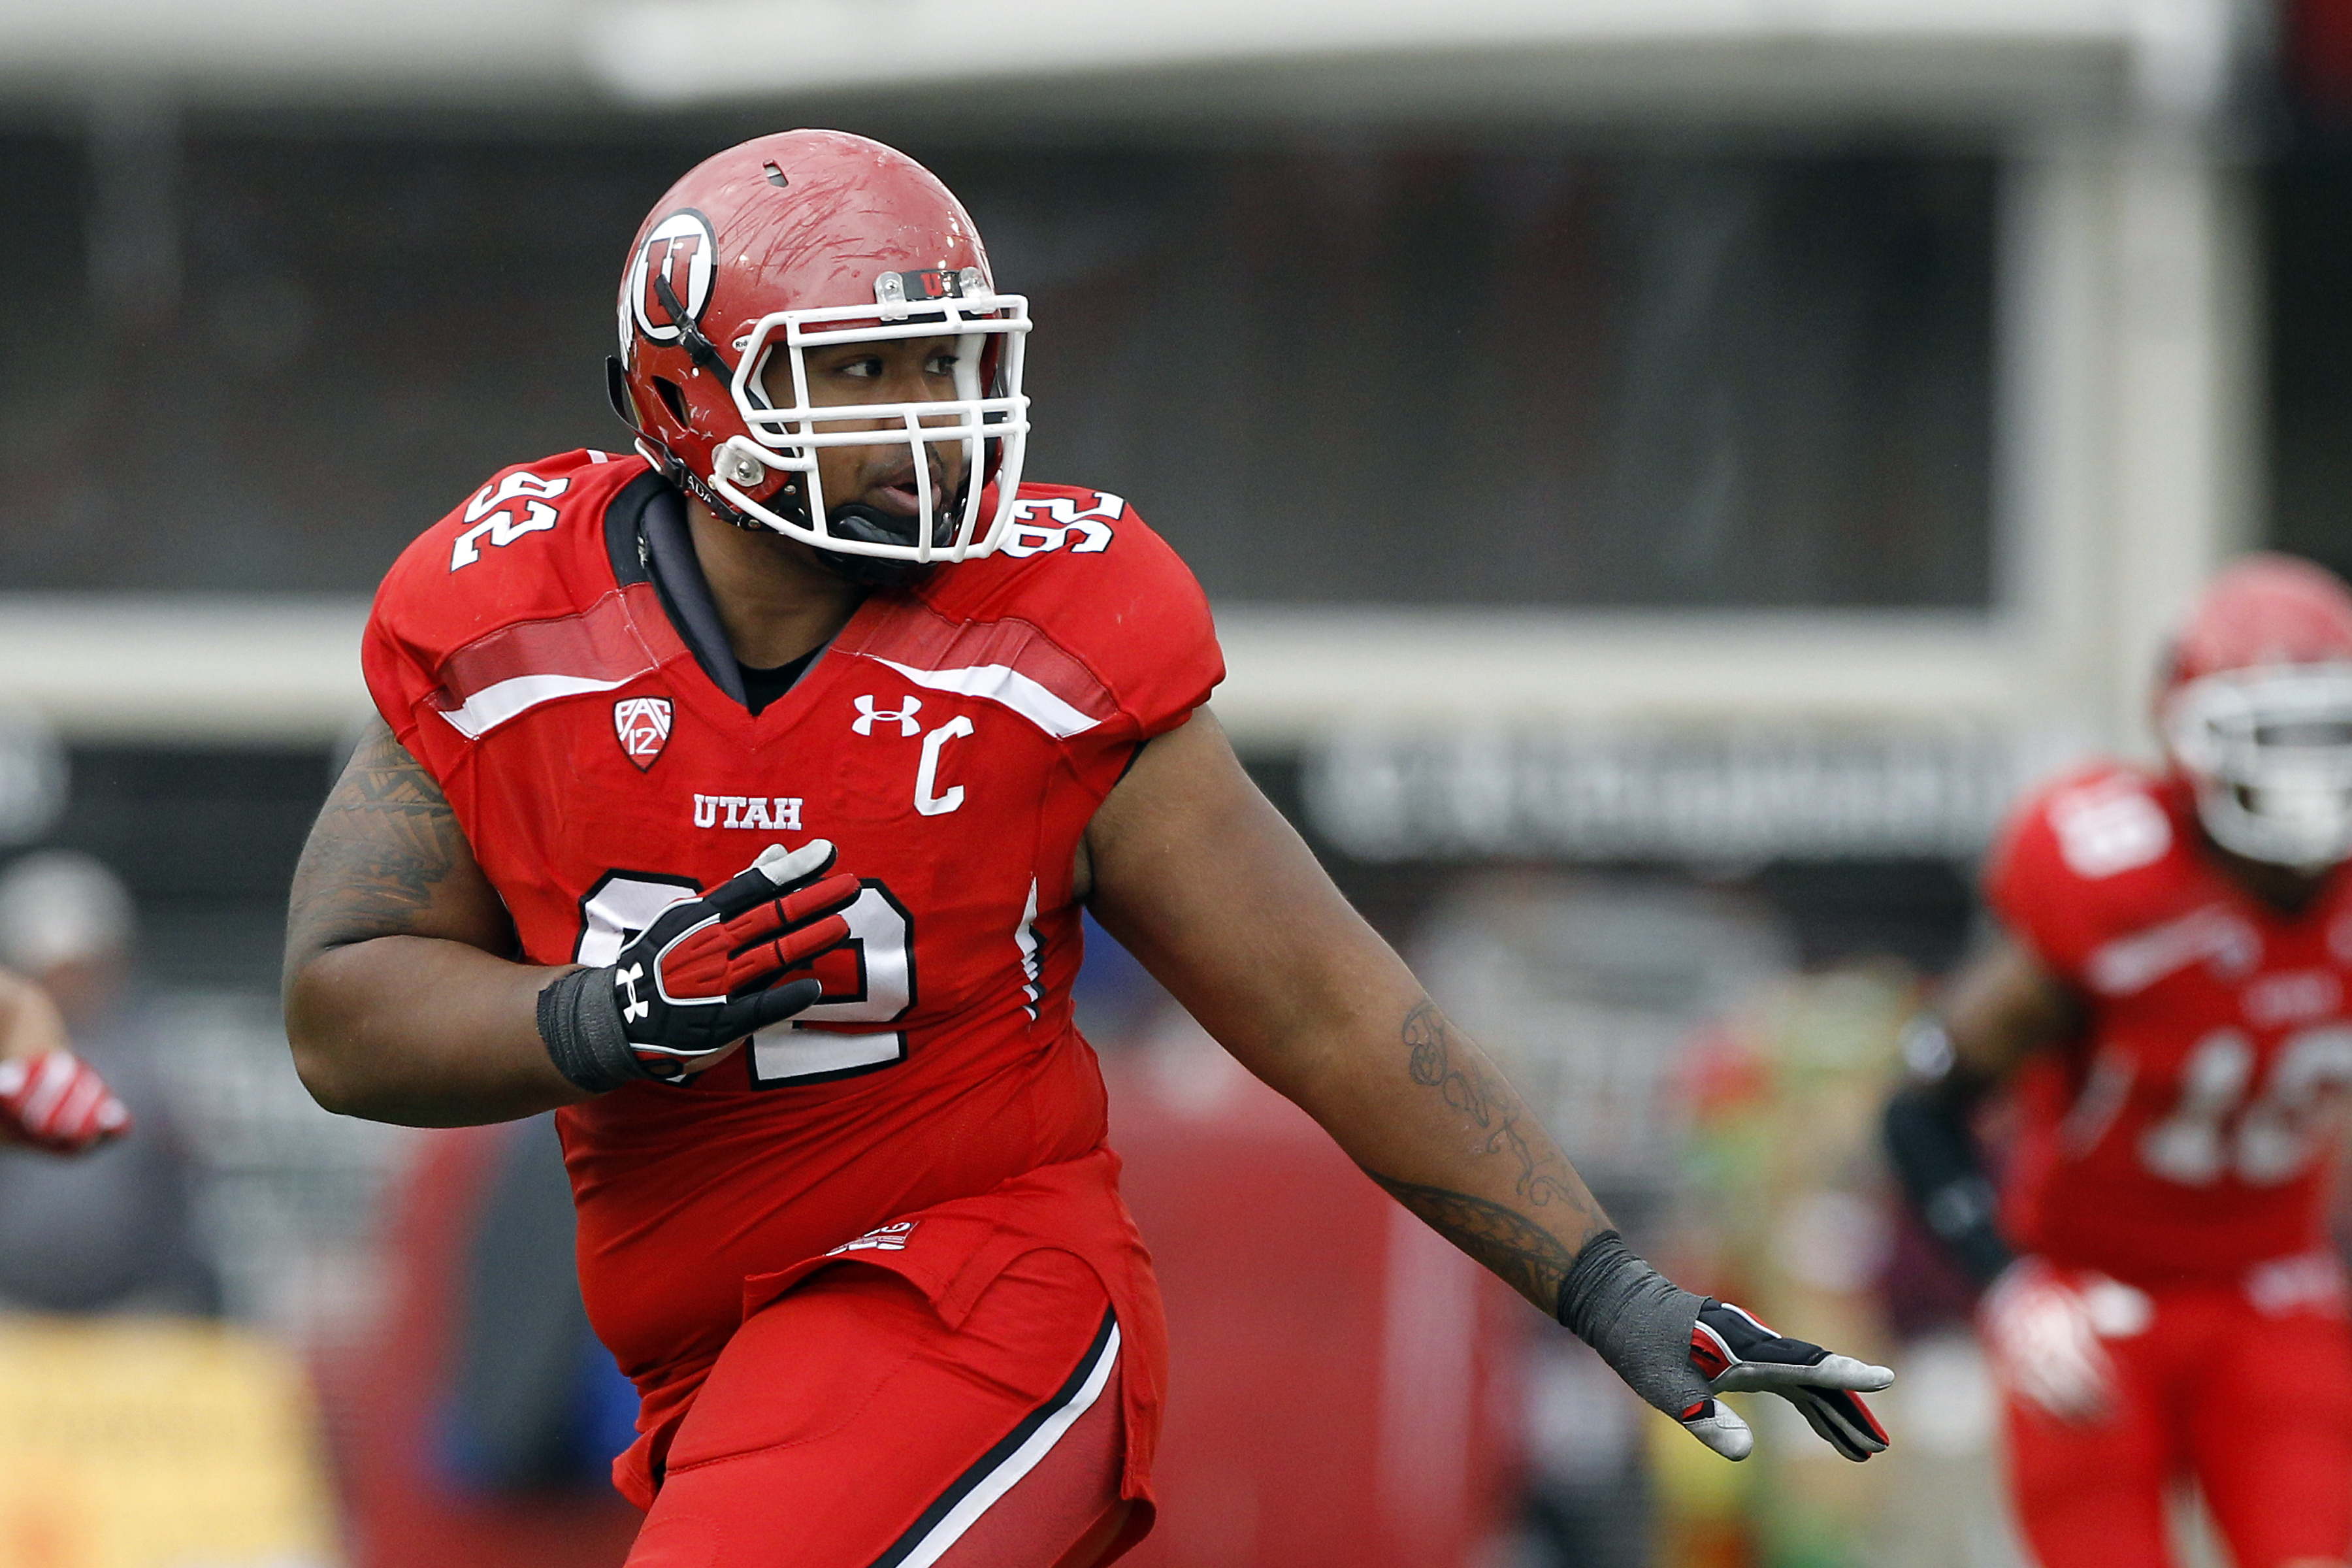 Star Lotulelei emerged as a star in 2011 and should be the nation's top tackle in 2012. (Univ. of Utah)